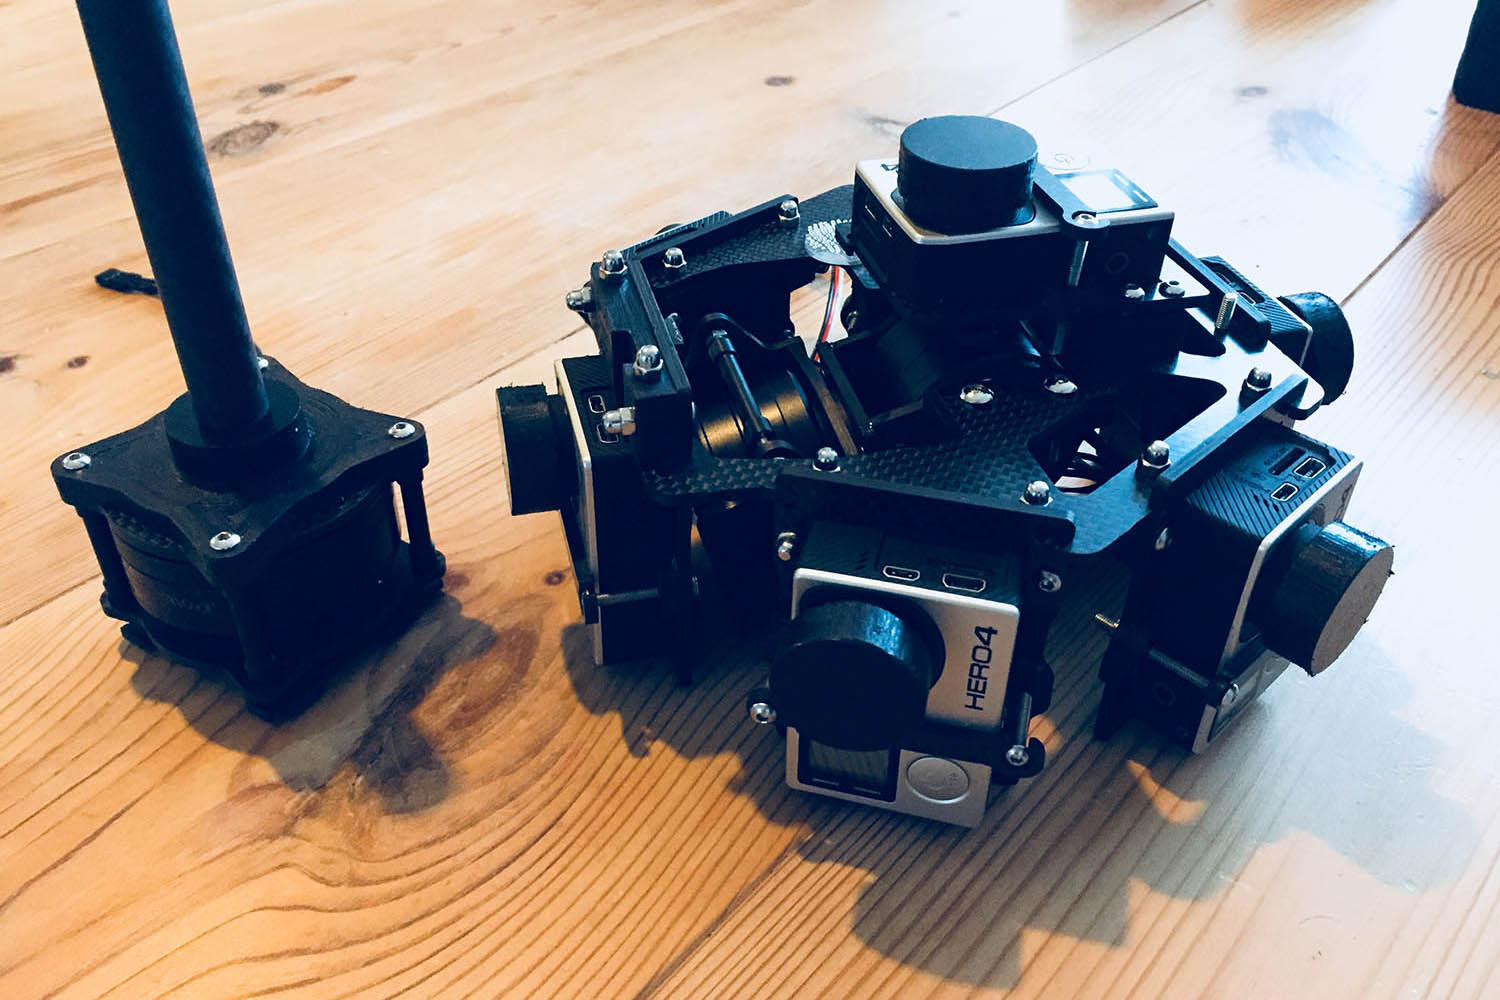 360 VR drone gimbal with 7 GoPro's